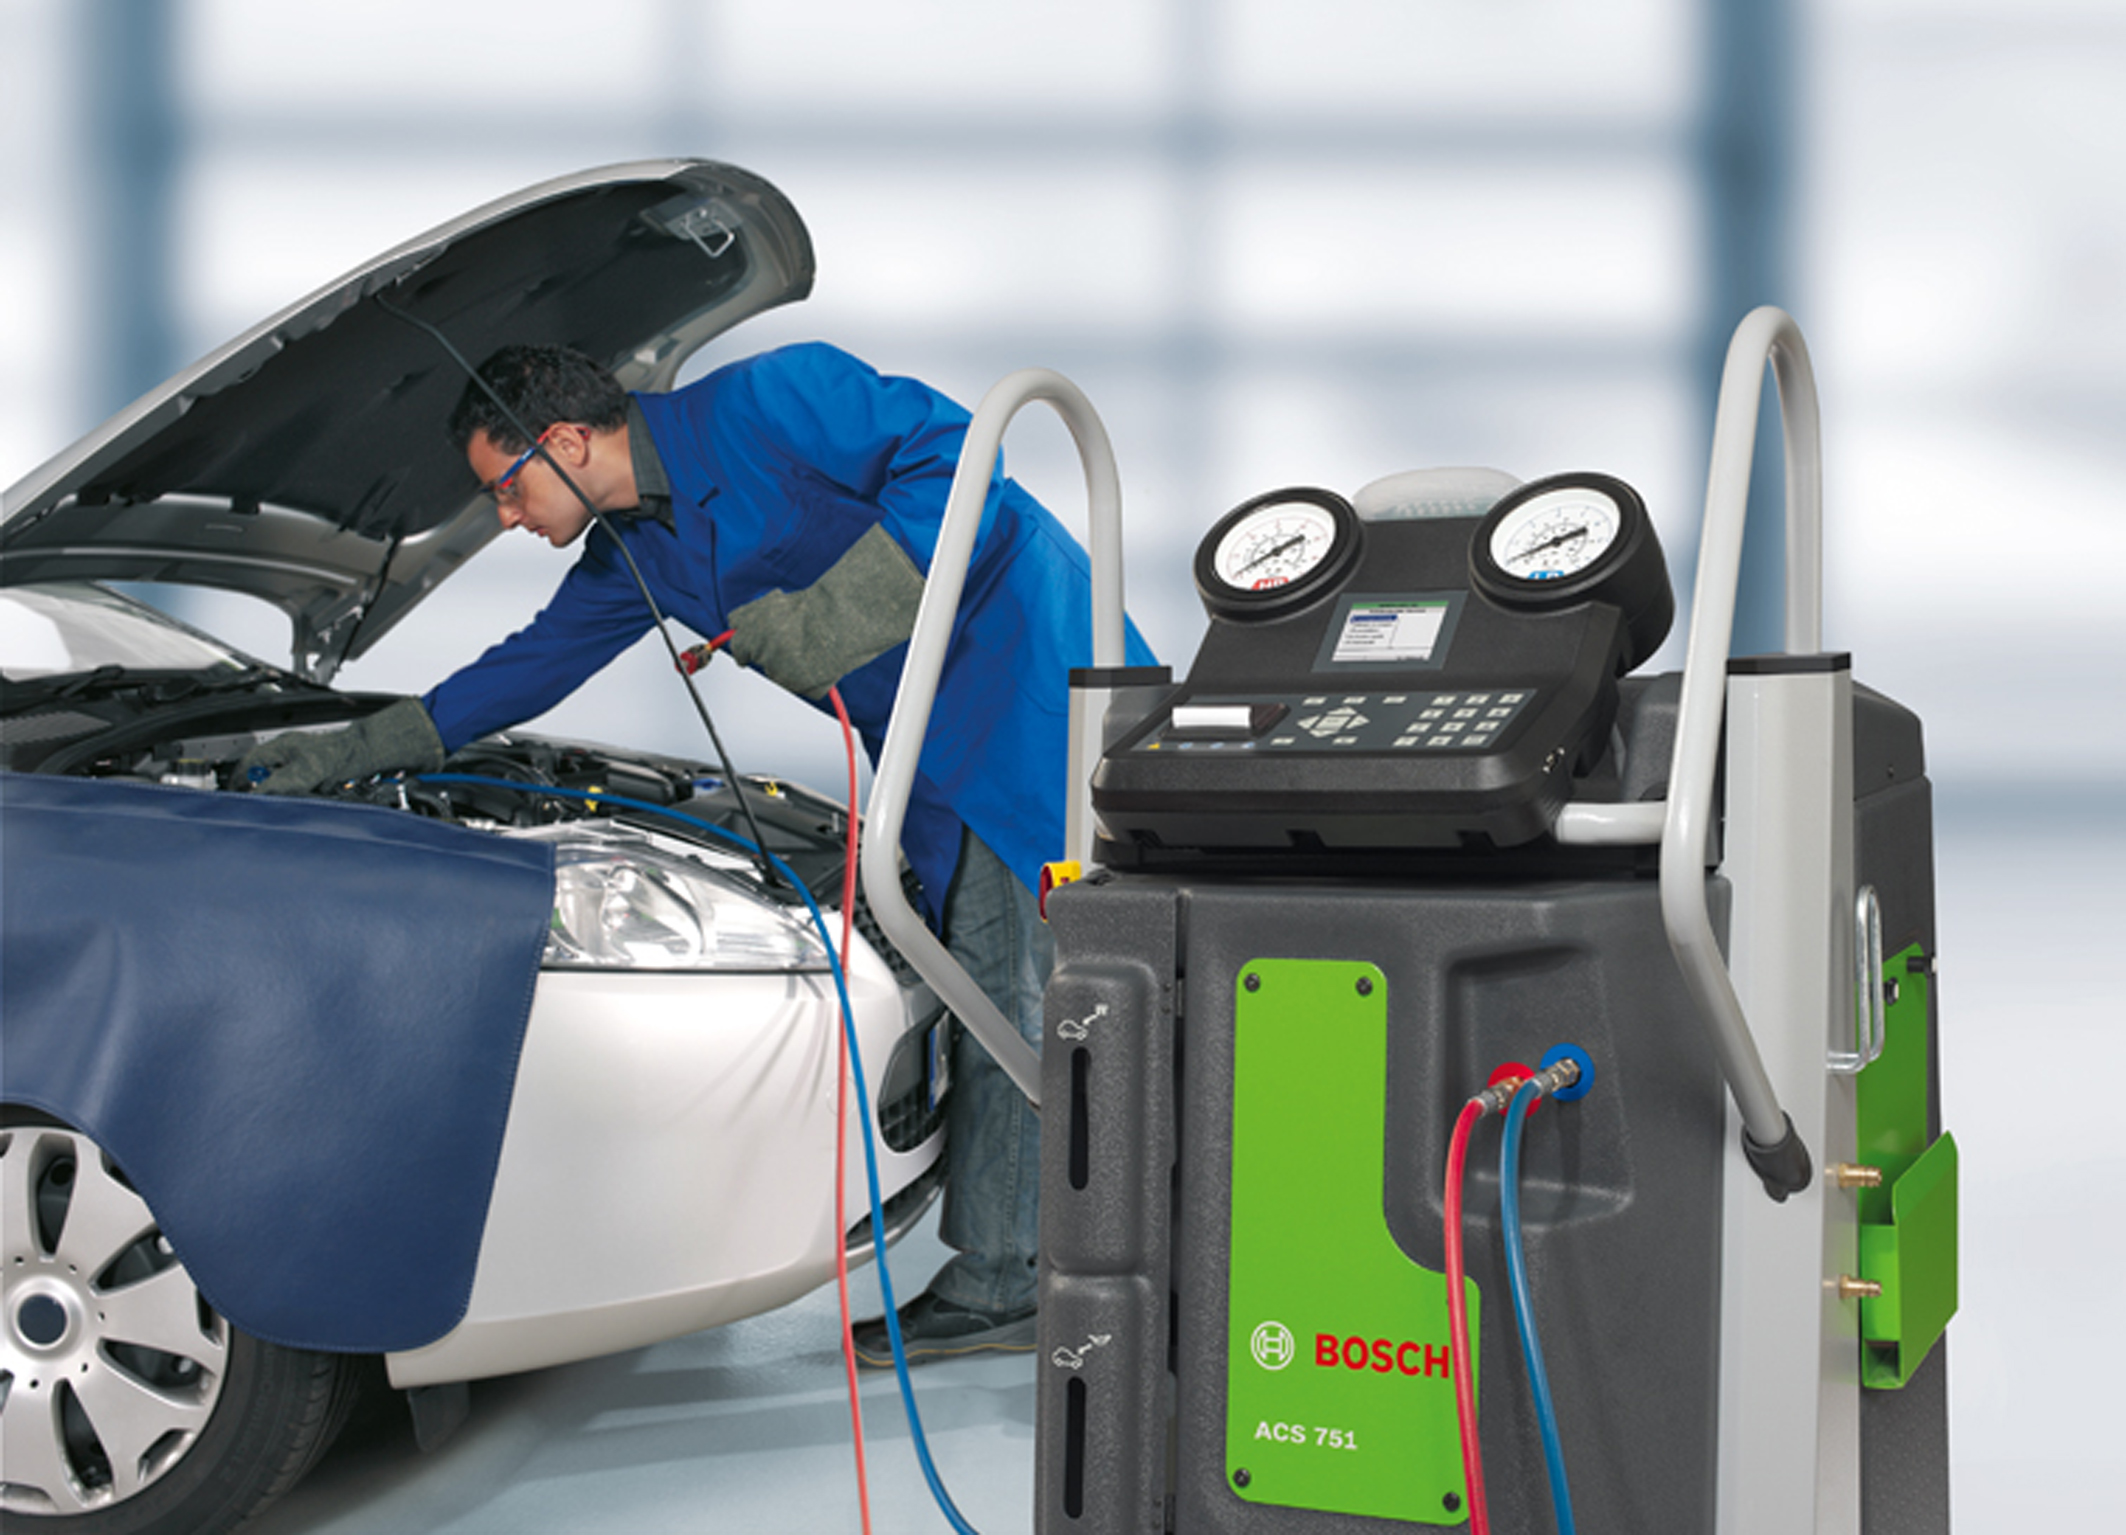 air conditioning machine for cars. bosch has updated its range of air conditioning servicing equipment for units that use the r134a machine cars i